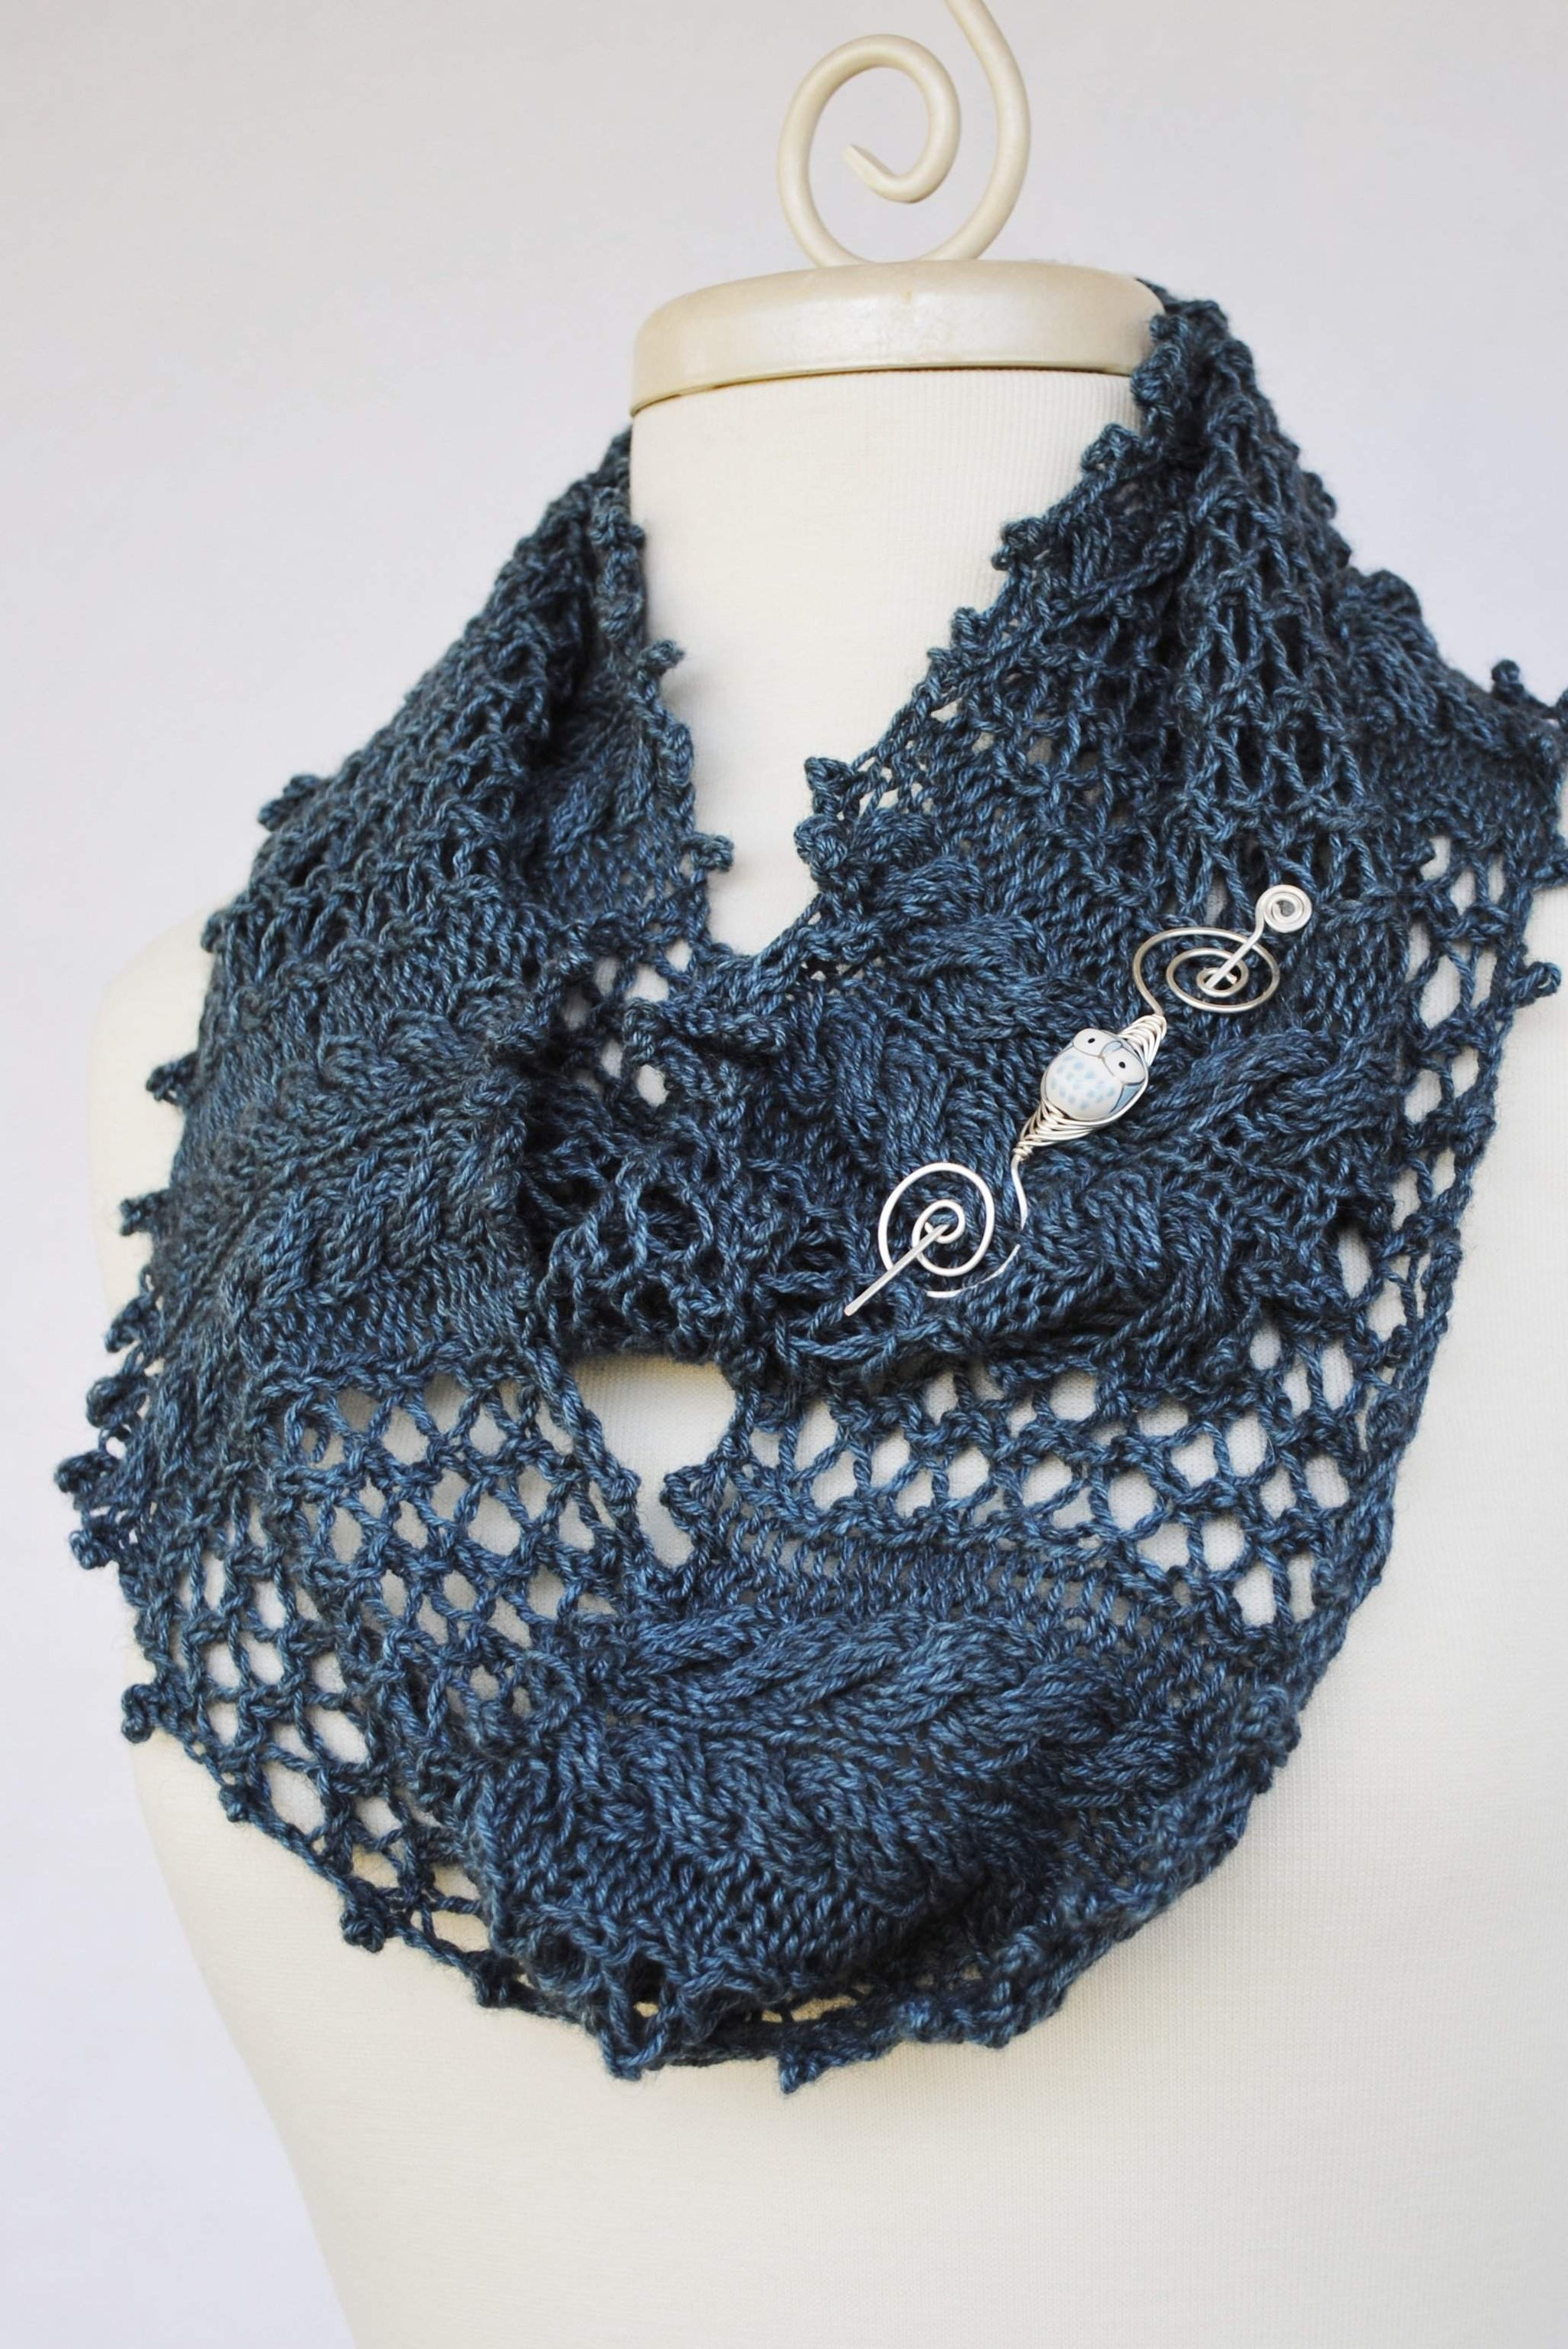 Bayleaf Garden Knit Infinity Scarf Pdf Pattern Download Crafty